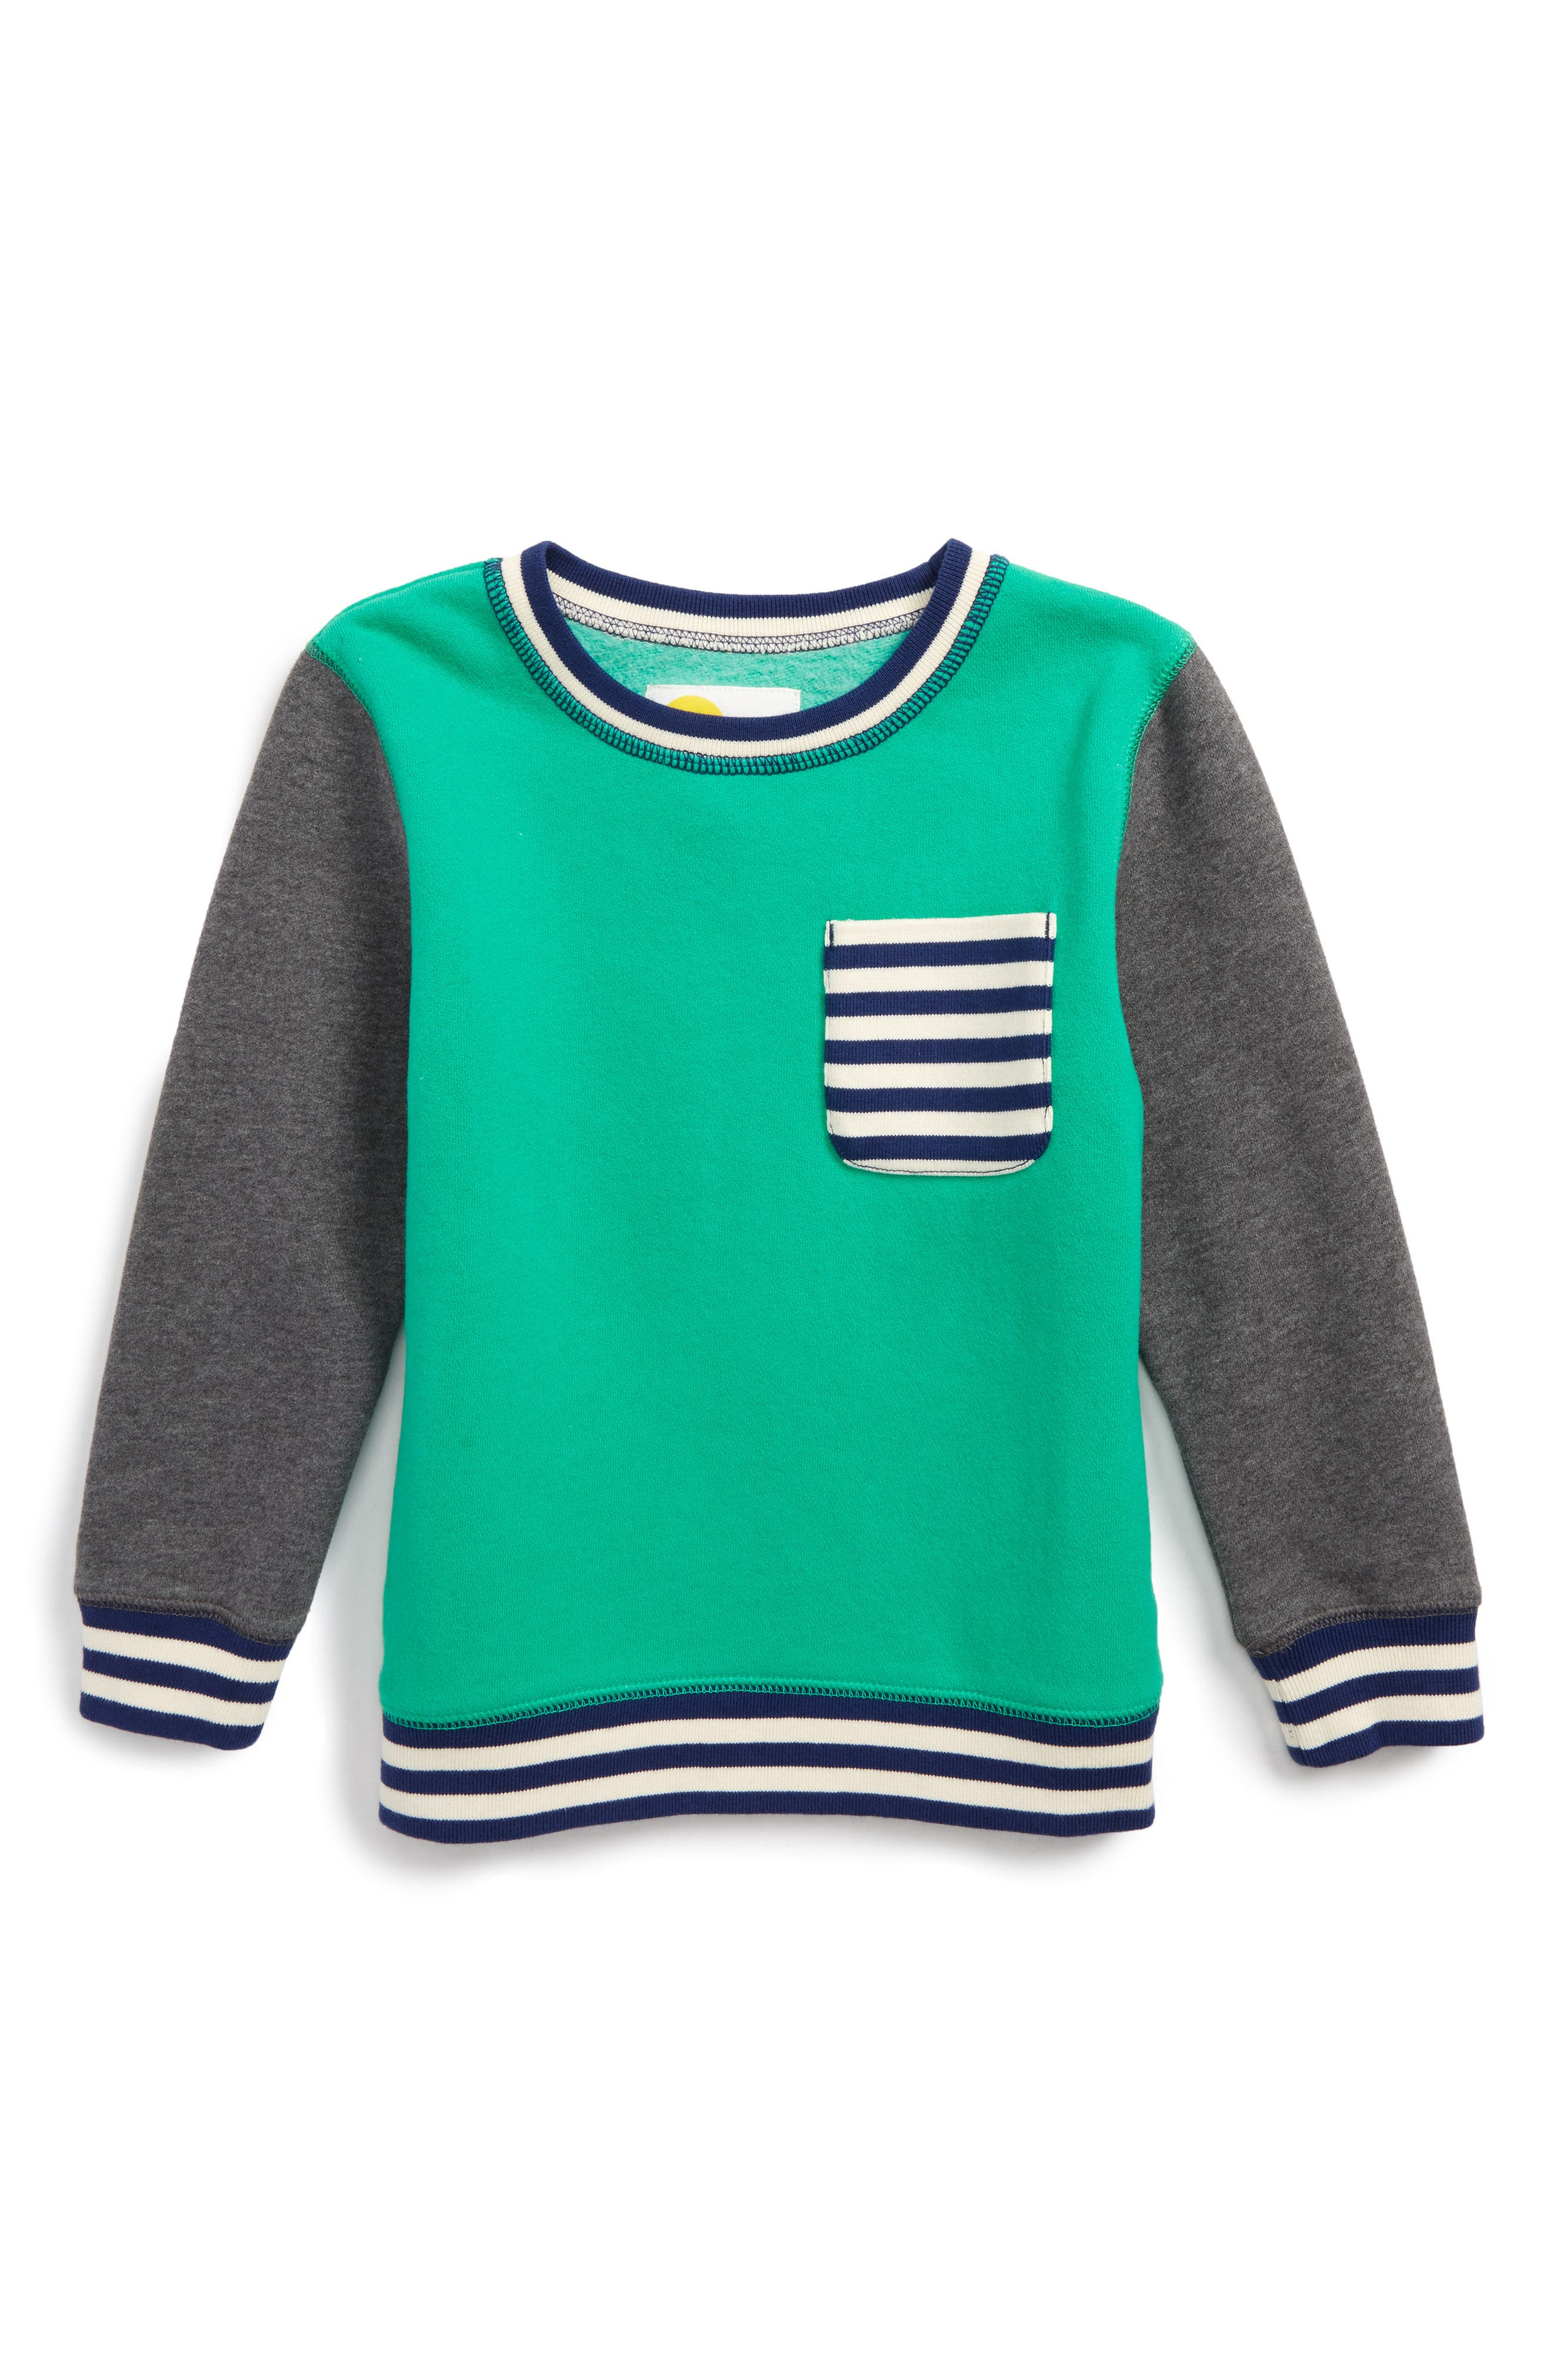 MINI BODEN Fun Sweatshirt